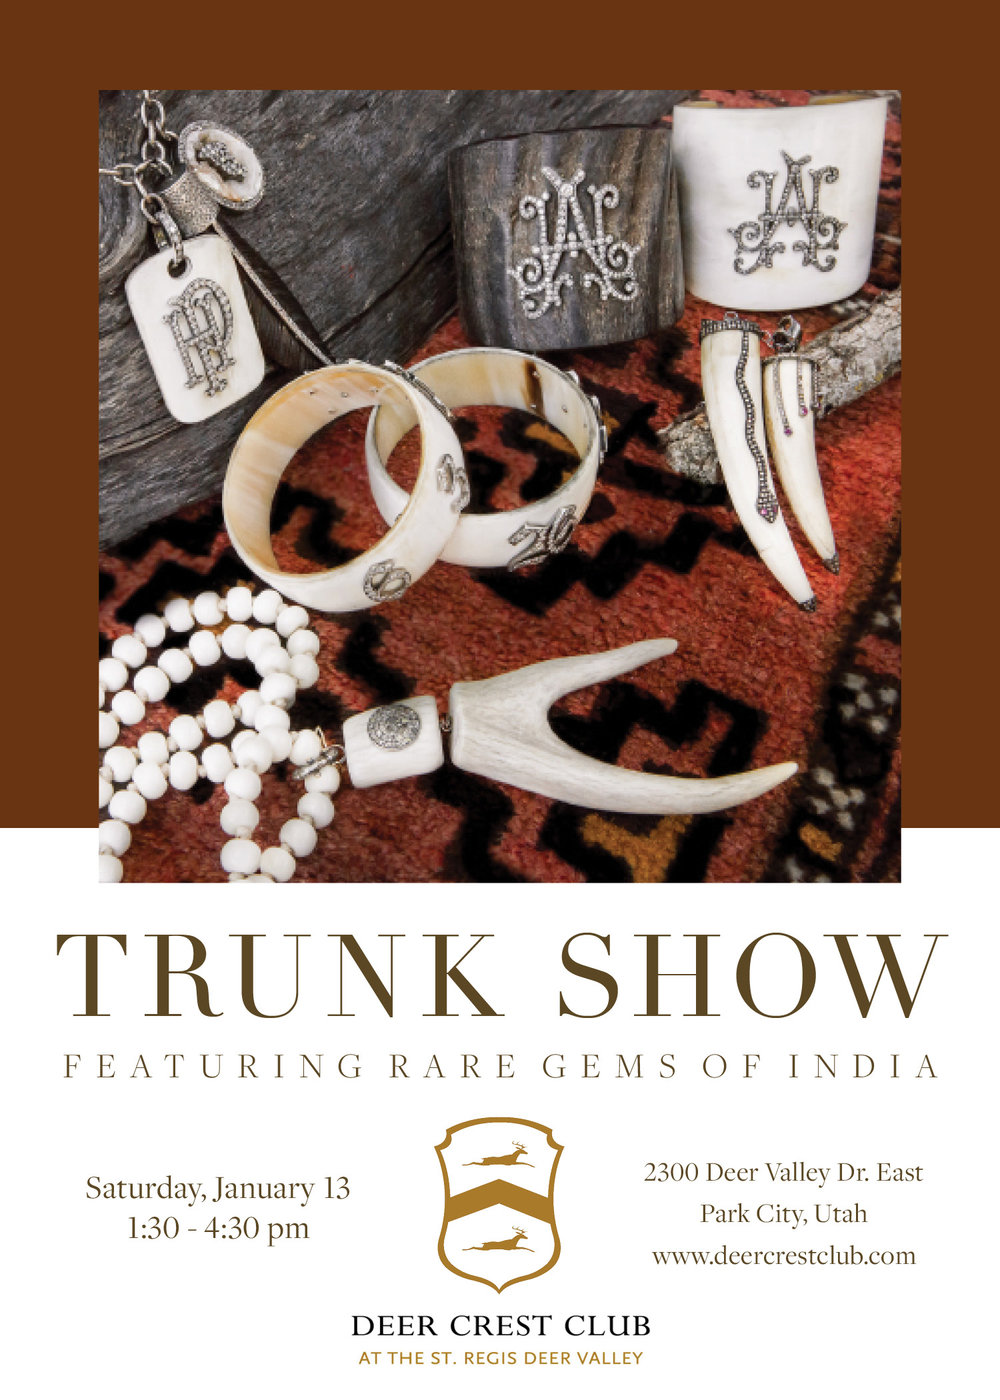 Trunk show invitation for jewelry maker client.